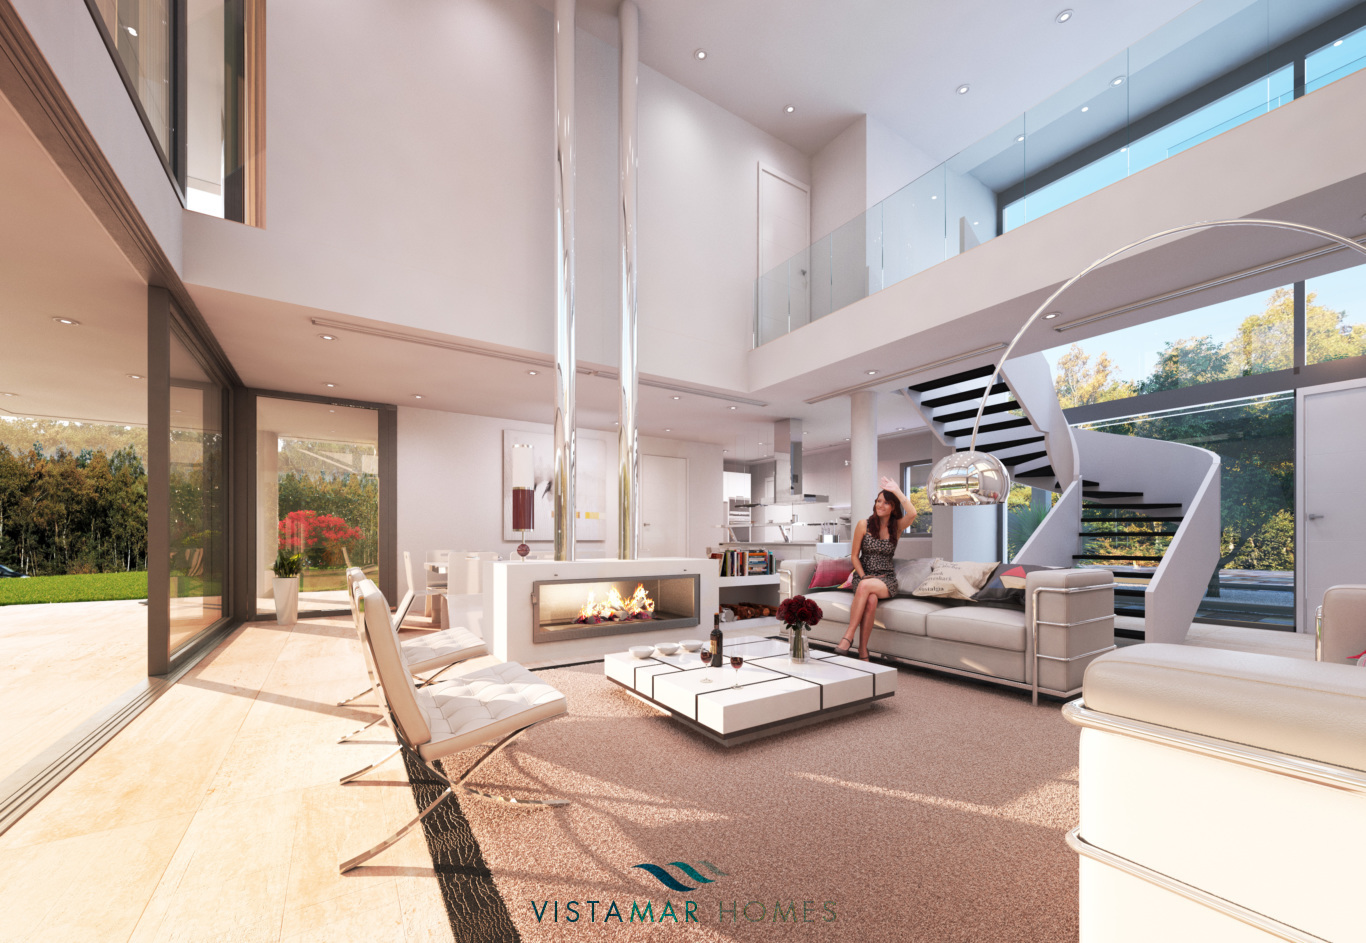 VMV028-linda-vista-new-off-plan-villa-for-sale-san-pedro-marbella-2